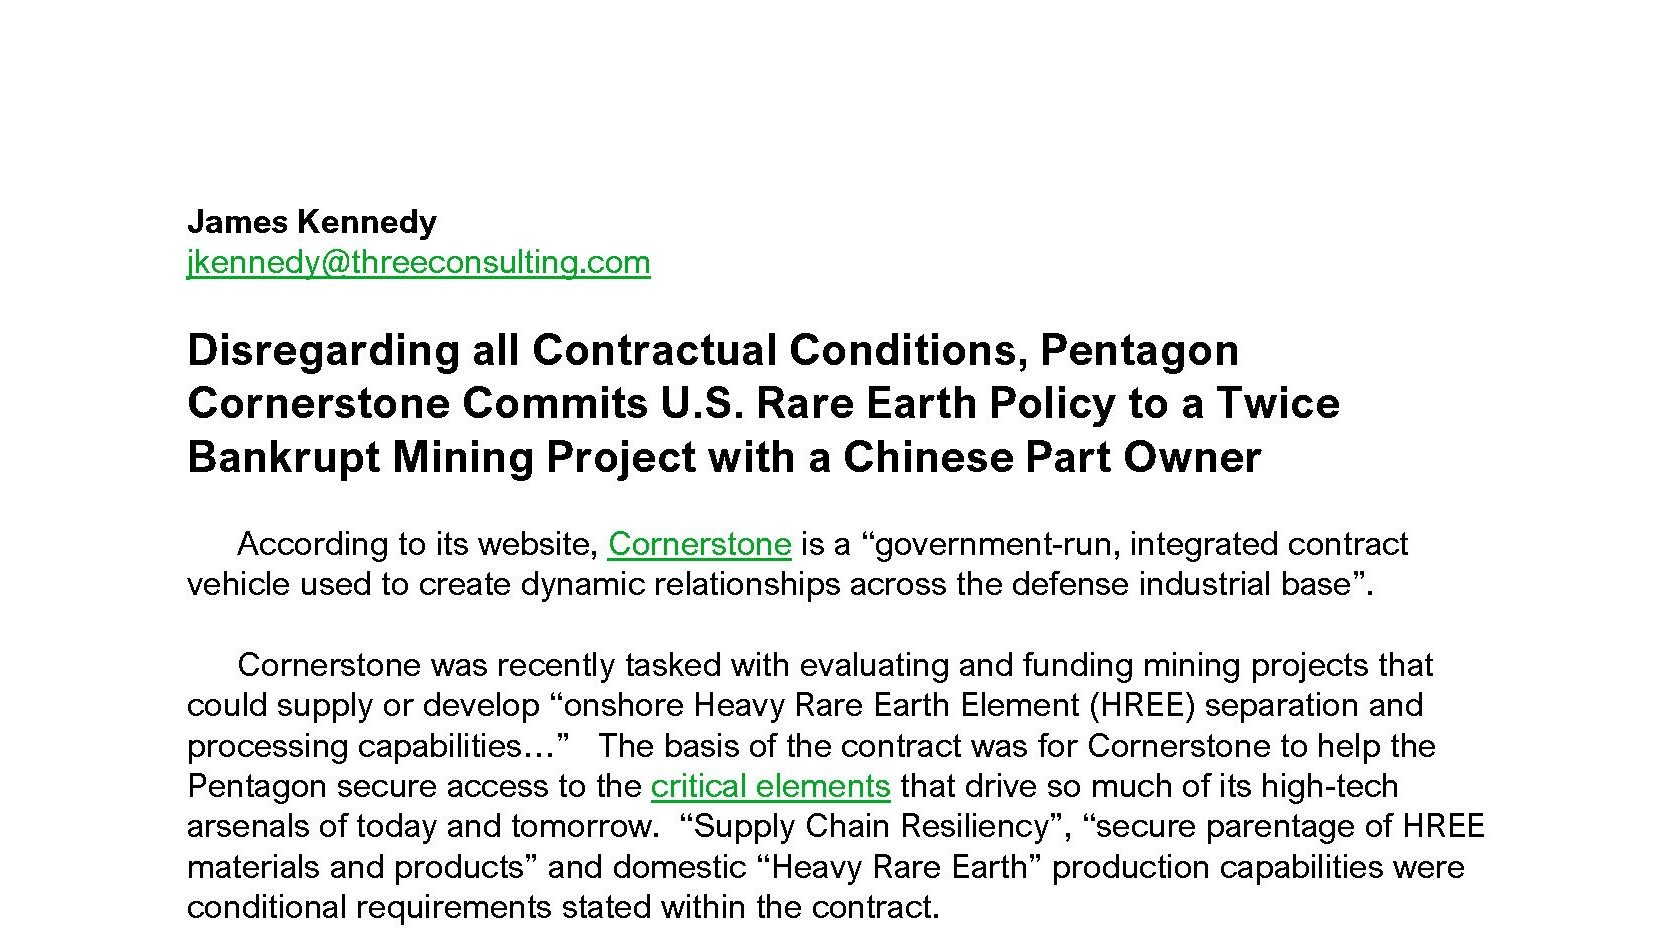 On Rare Earths, Pentagon Cornerstone is Making the Same Mistake Twice